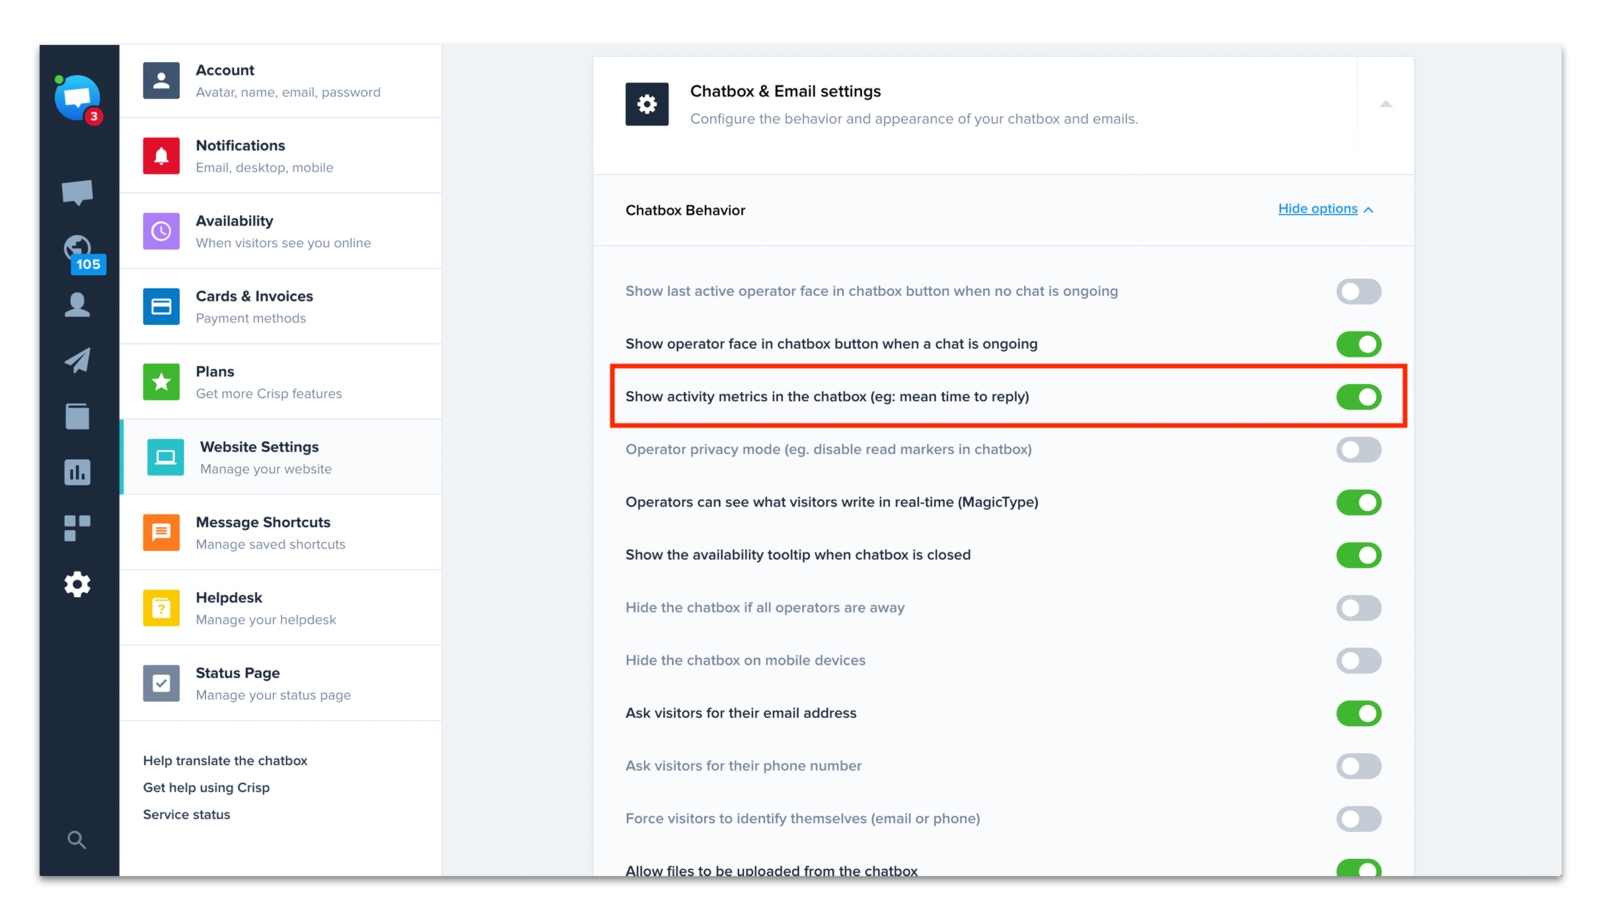 Disable: Show activity metrics on the chatbox